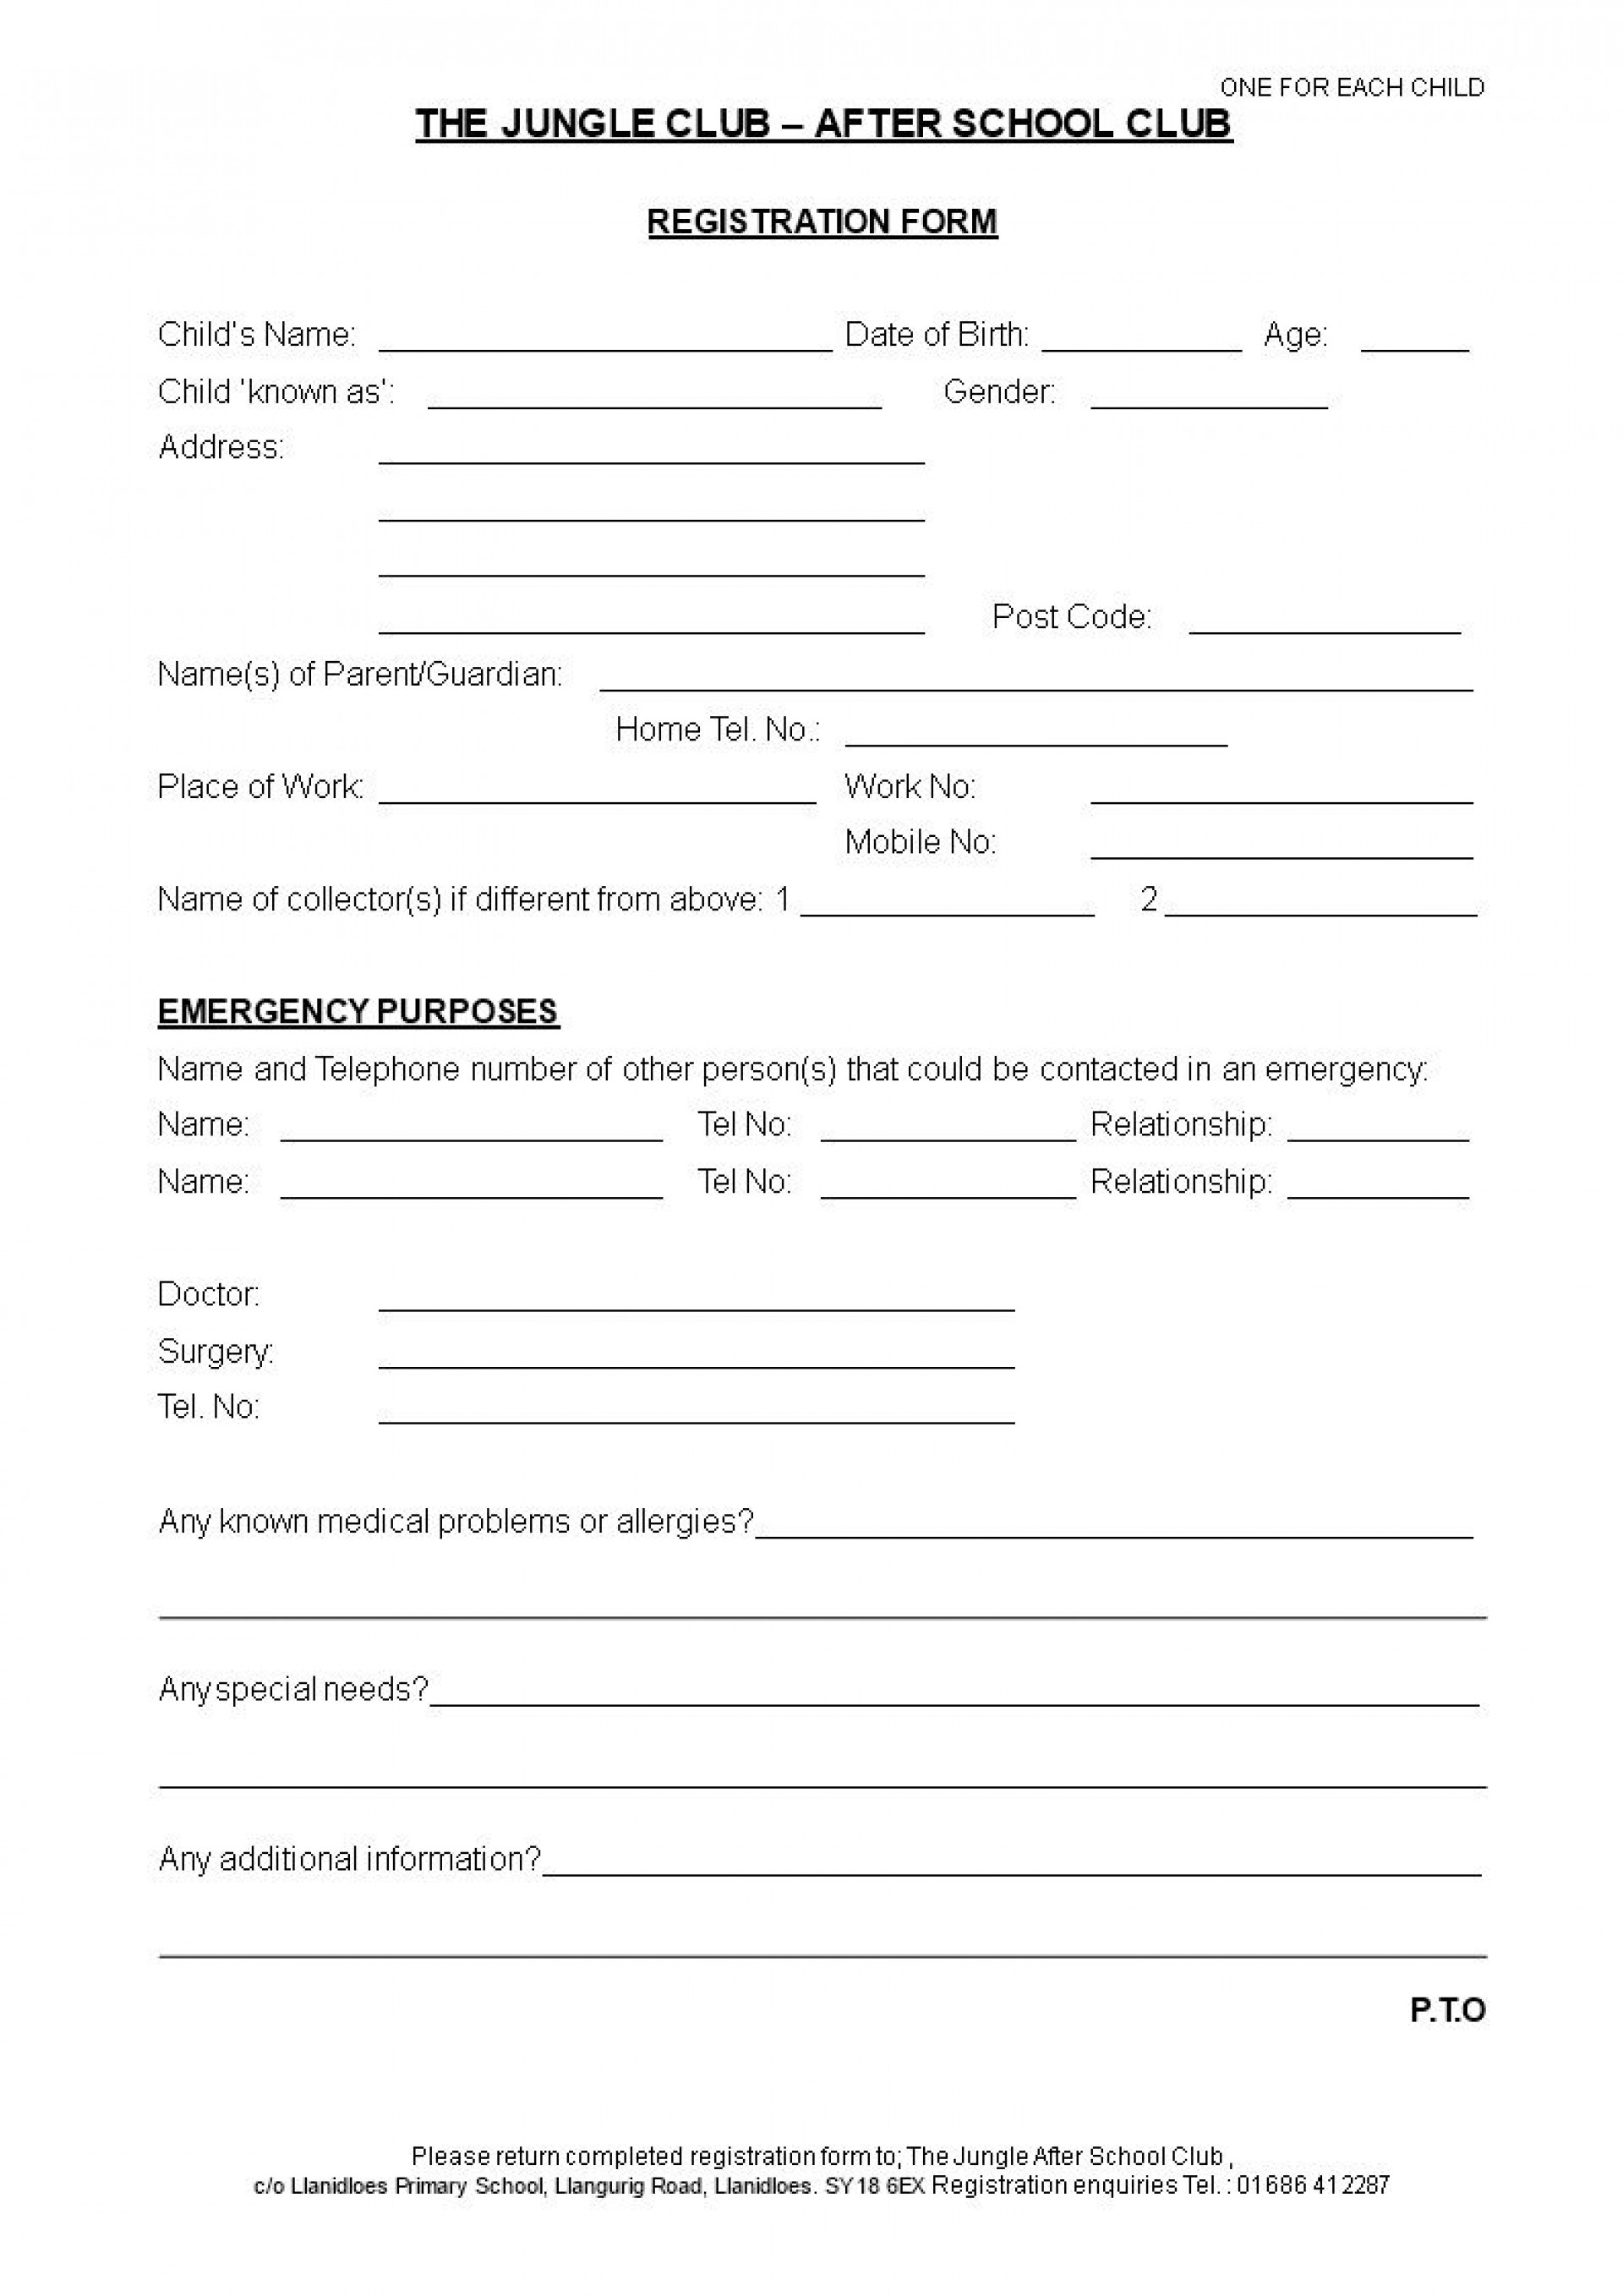 005 Excellent Medical Consent Form Template High Definition  Templates Free1920